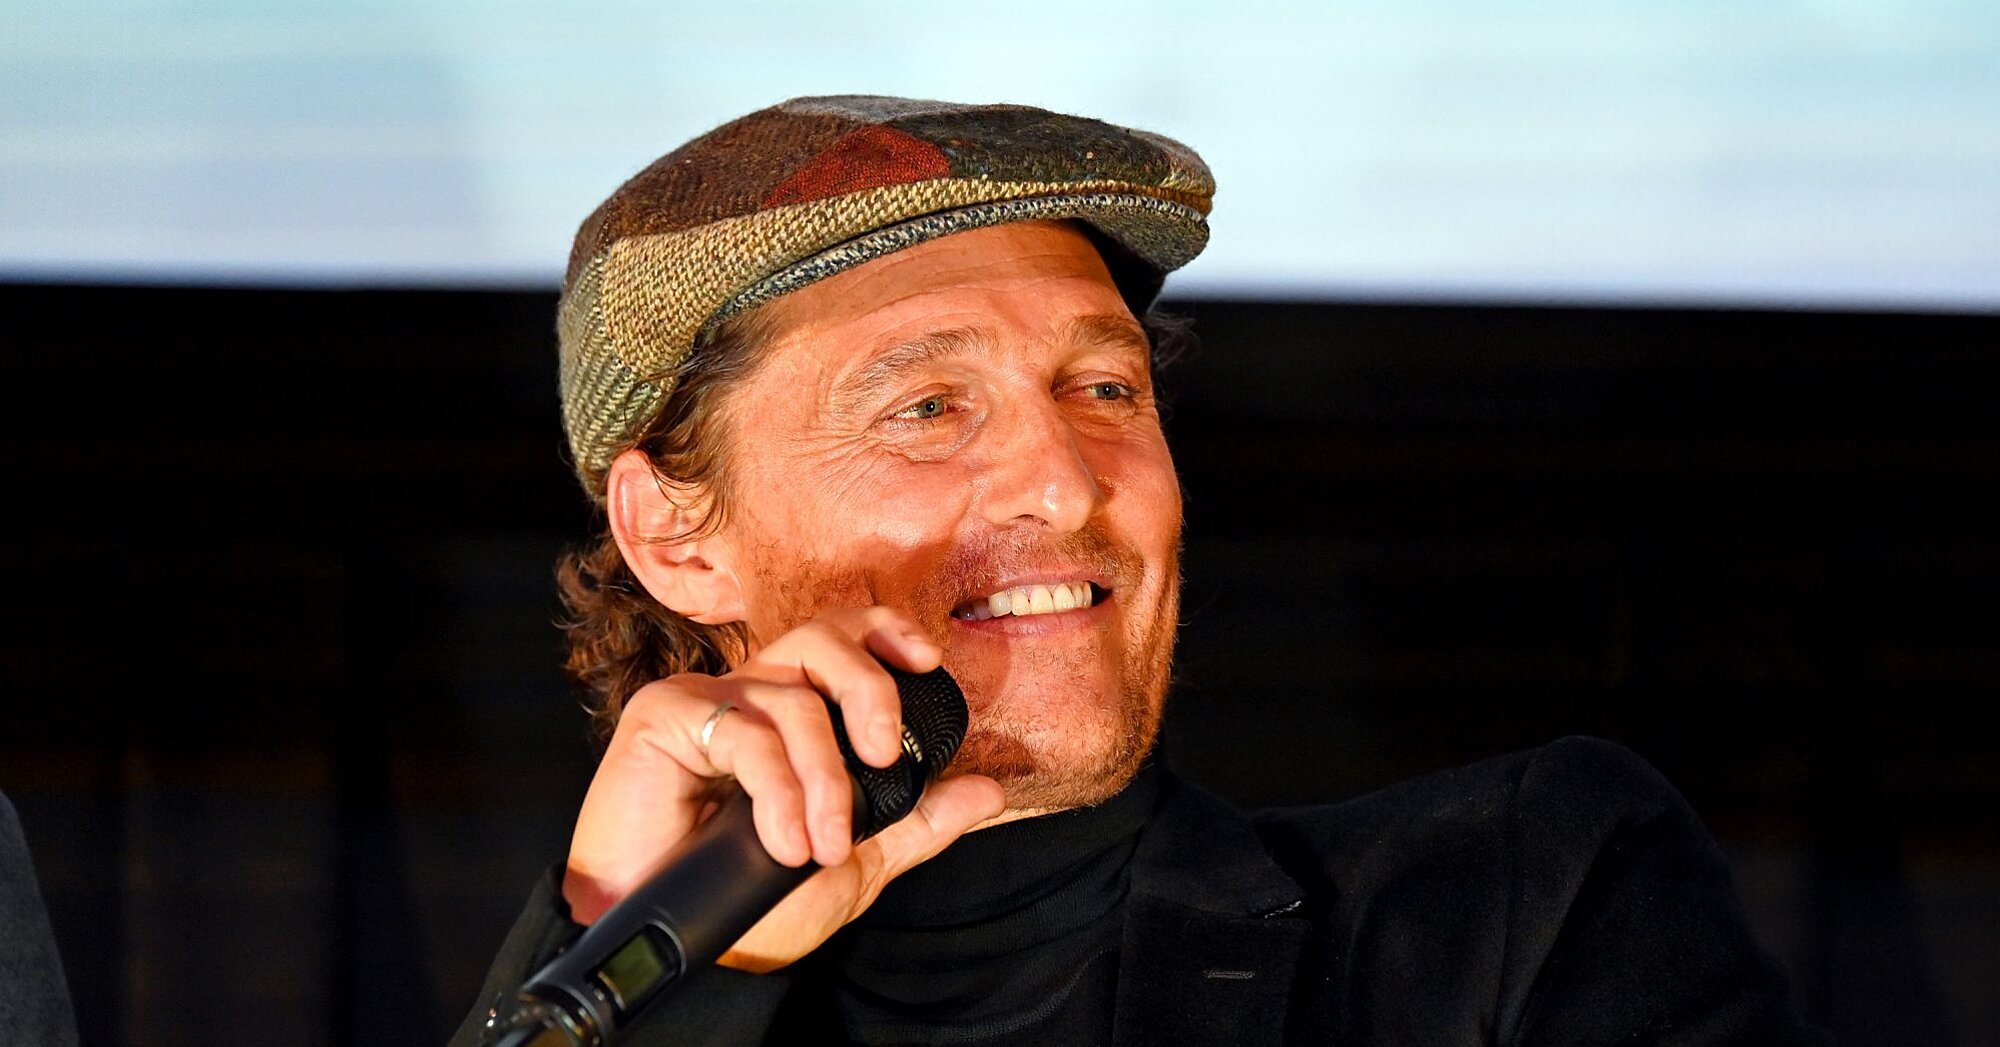 Matthew McConaughey Says He May Be Interested in Joining the WWE